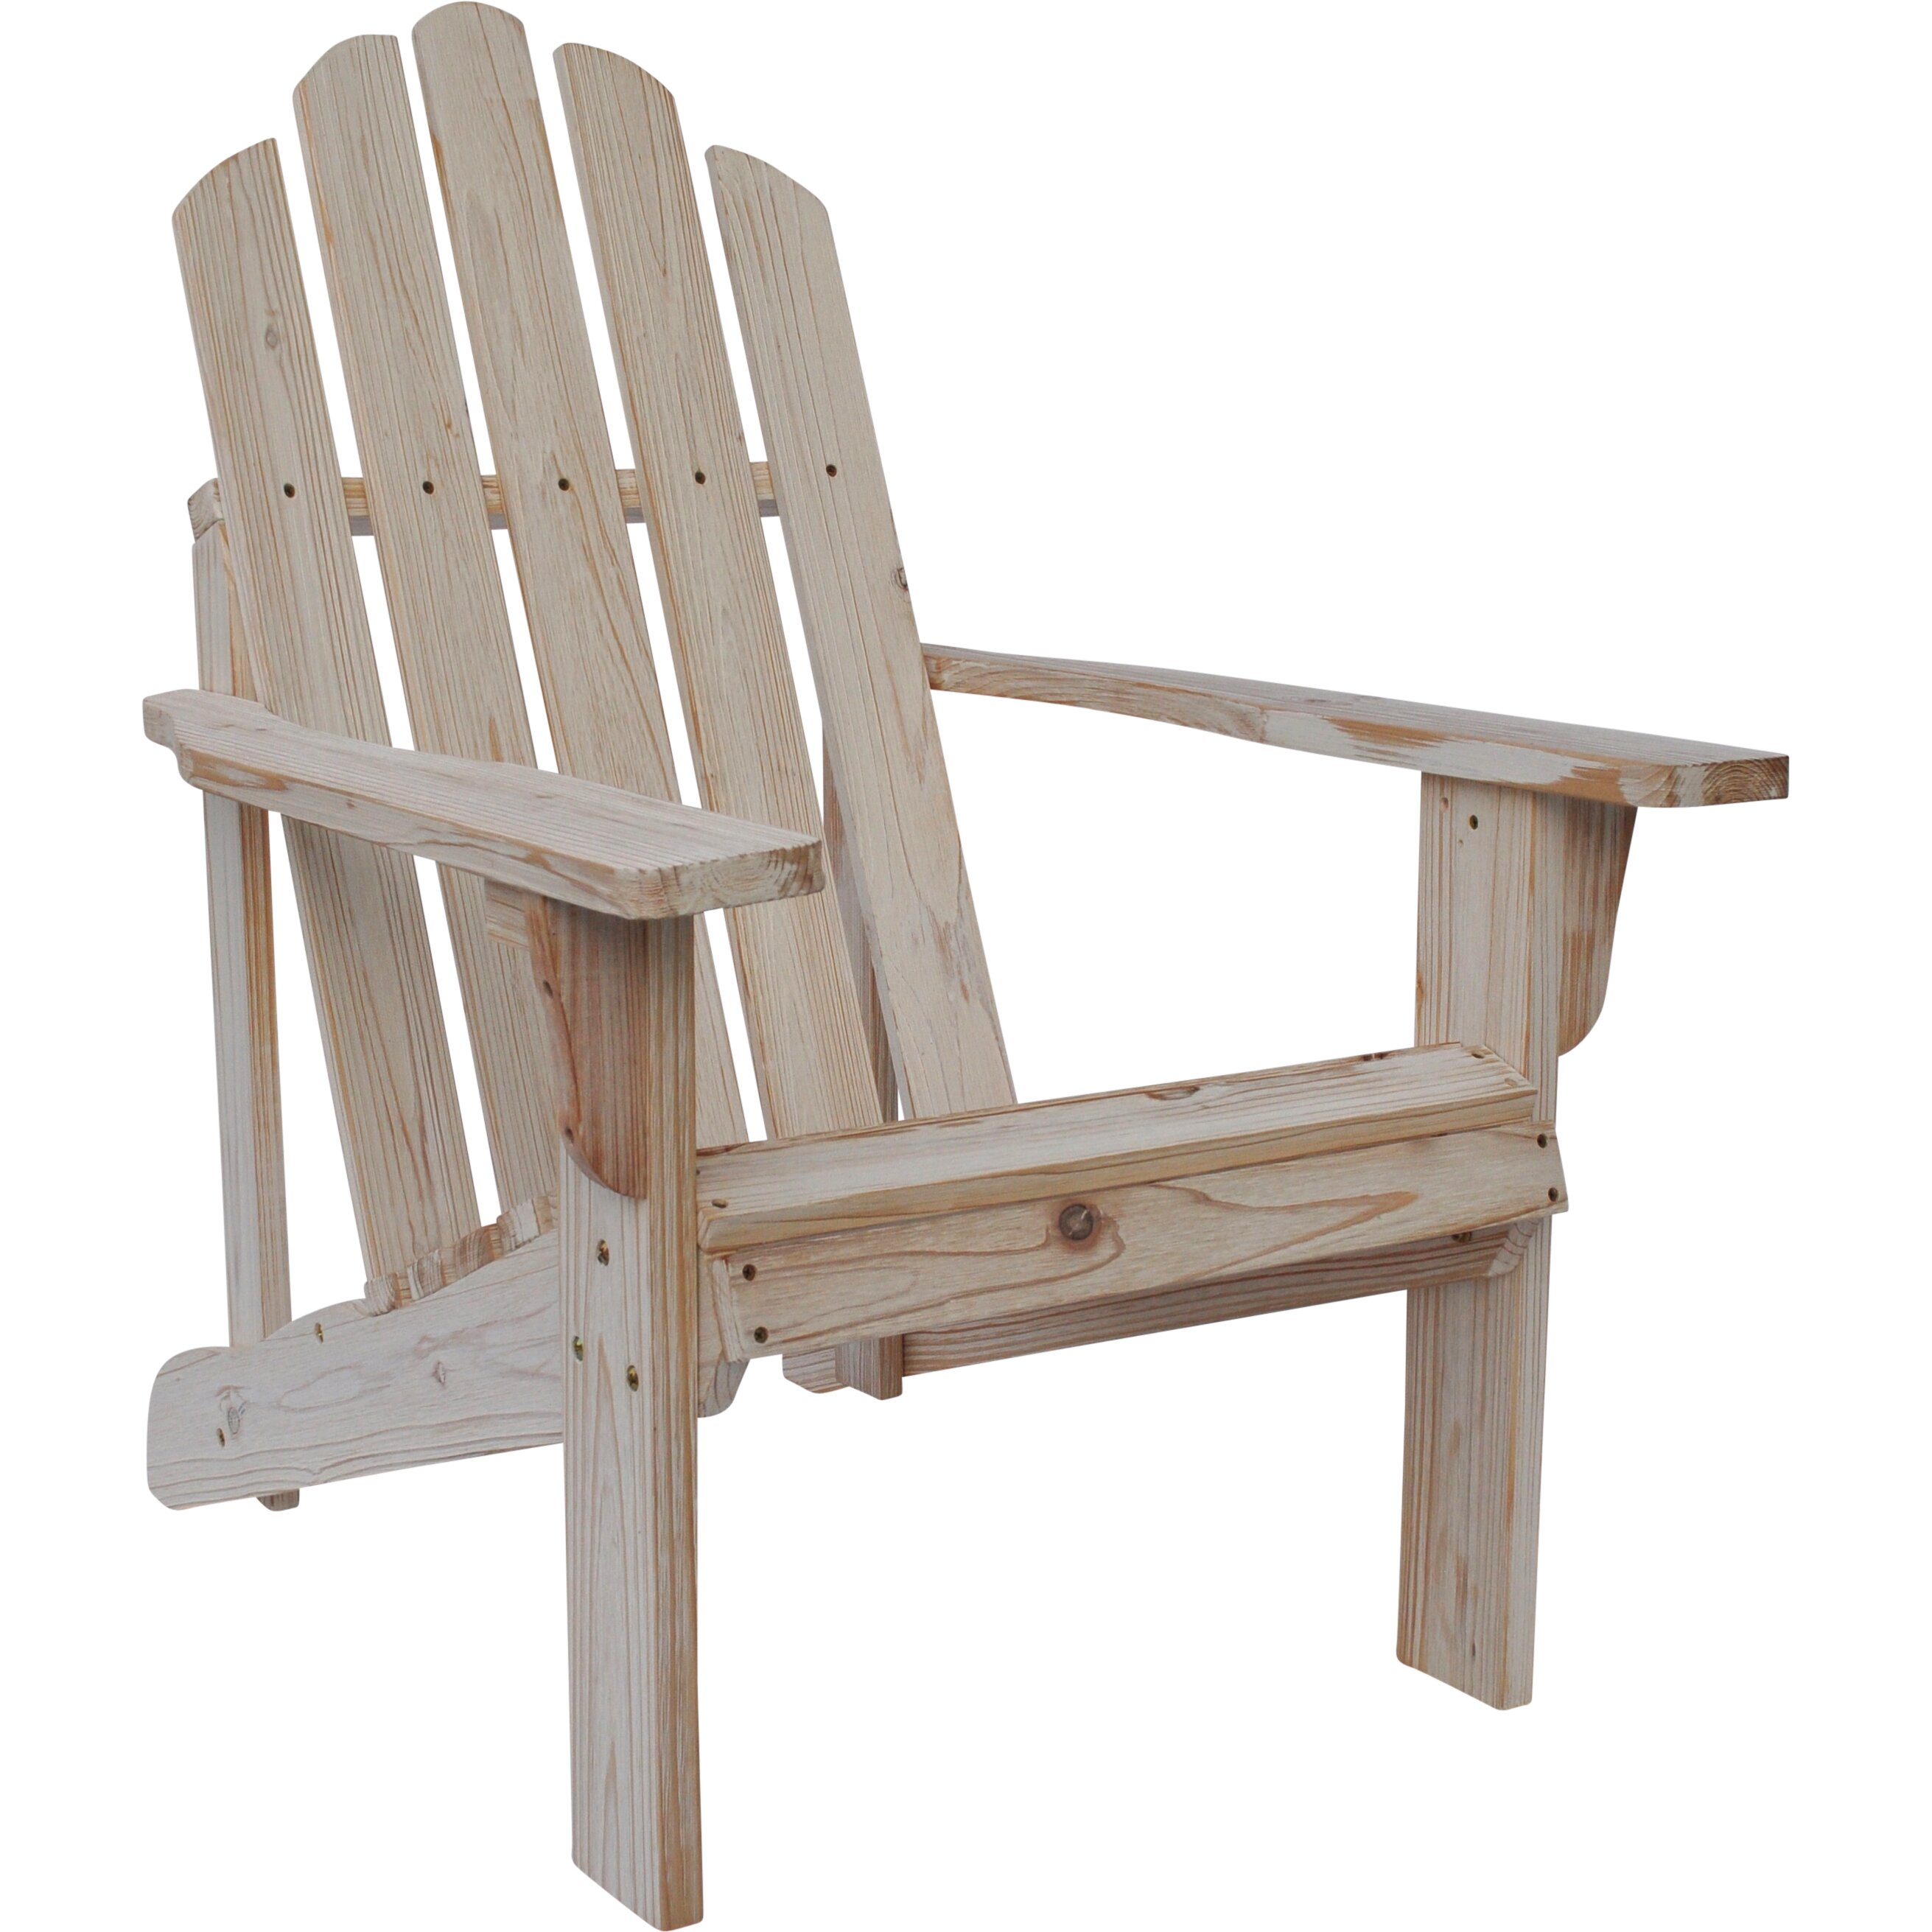 Amazing photo of Outdoor Patio Furniture Wood Adirondack Chairs Shine Company Inc  with #4B372B color and 2622x2622 pixels